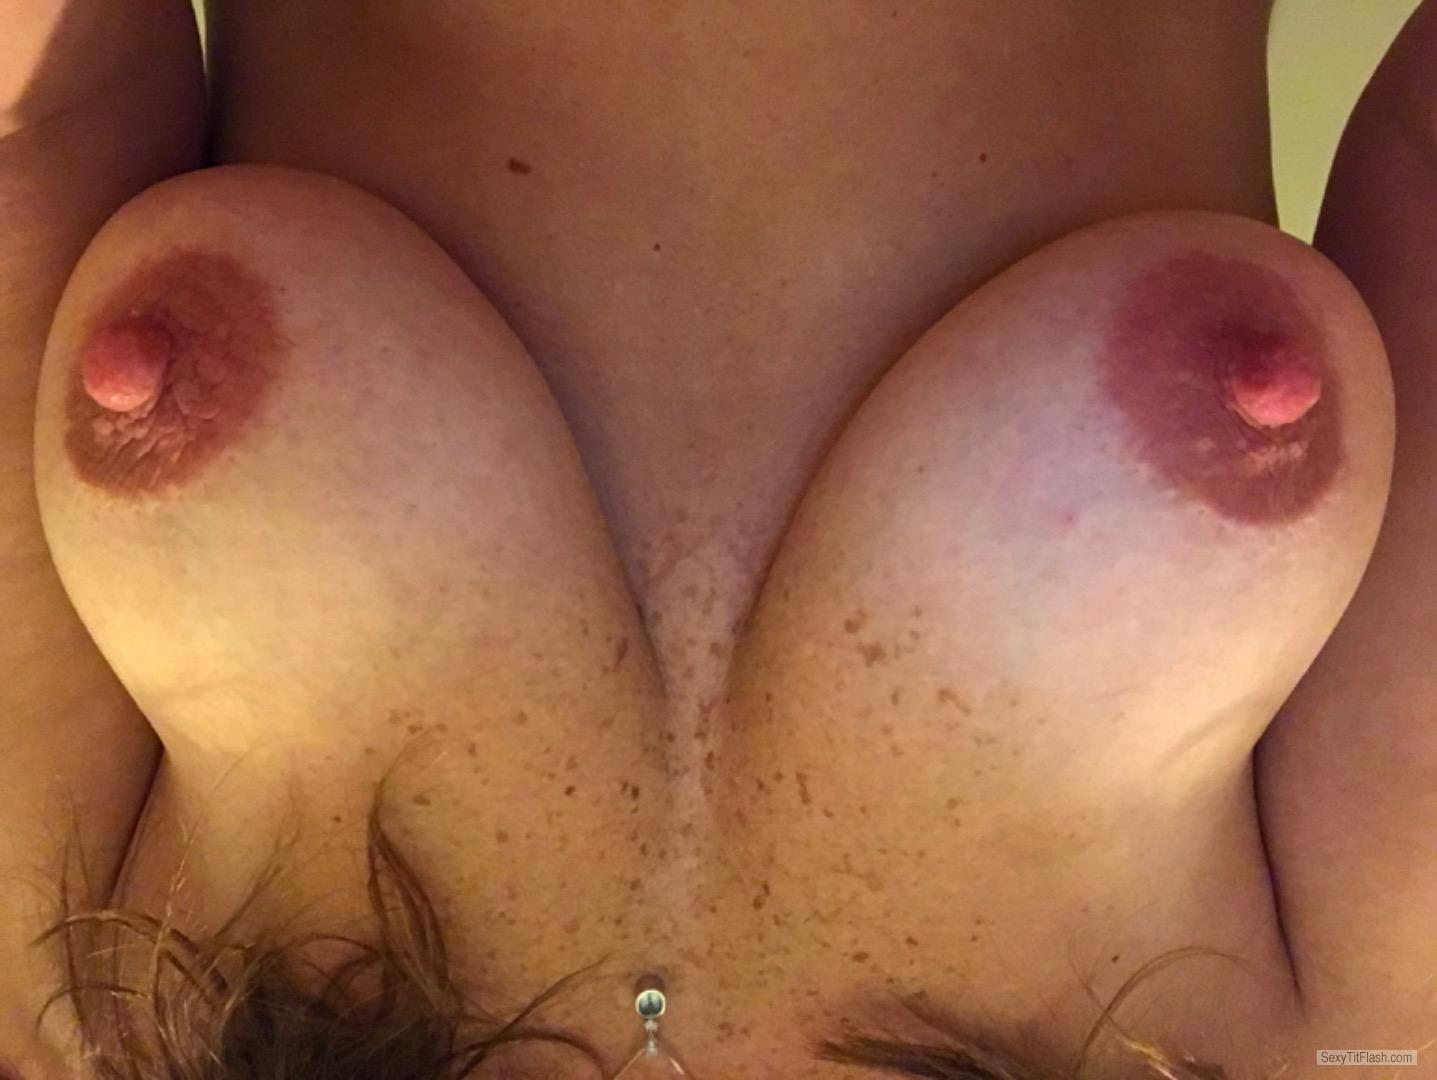 Tit Flash: Wife's Medium Tits (Selfie) - Lisas from United States